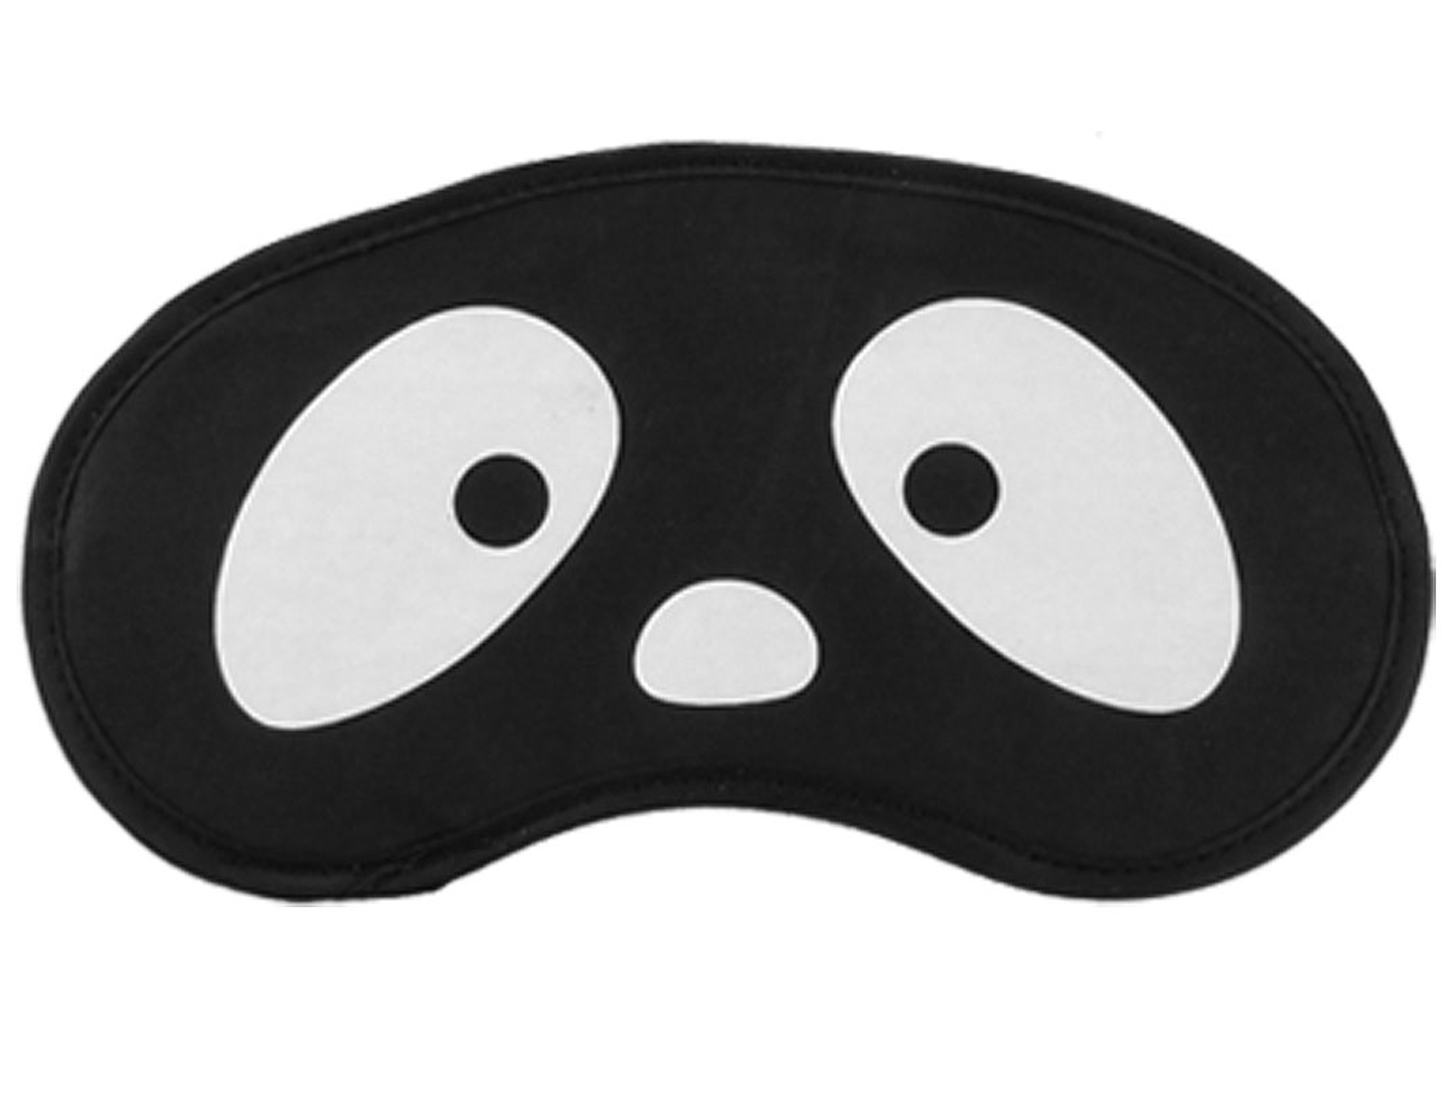 Elastic Strap Cartoon Eye Print Travel Sleep Eyeshade Mask Cover Blinder